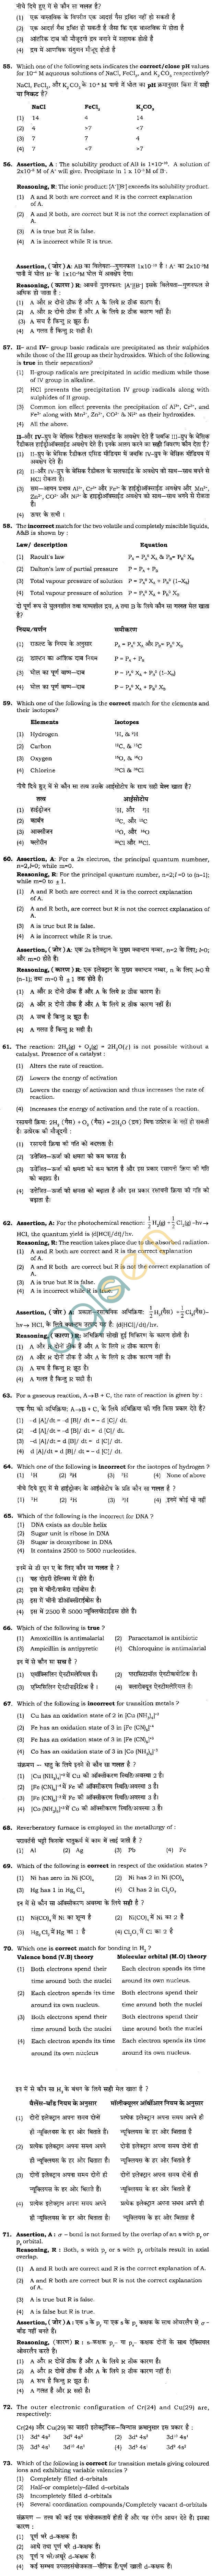 BHU UET 2011 B.Sc. Biology Question Paper